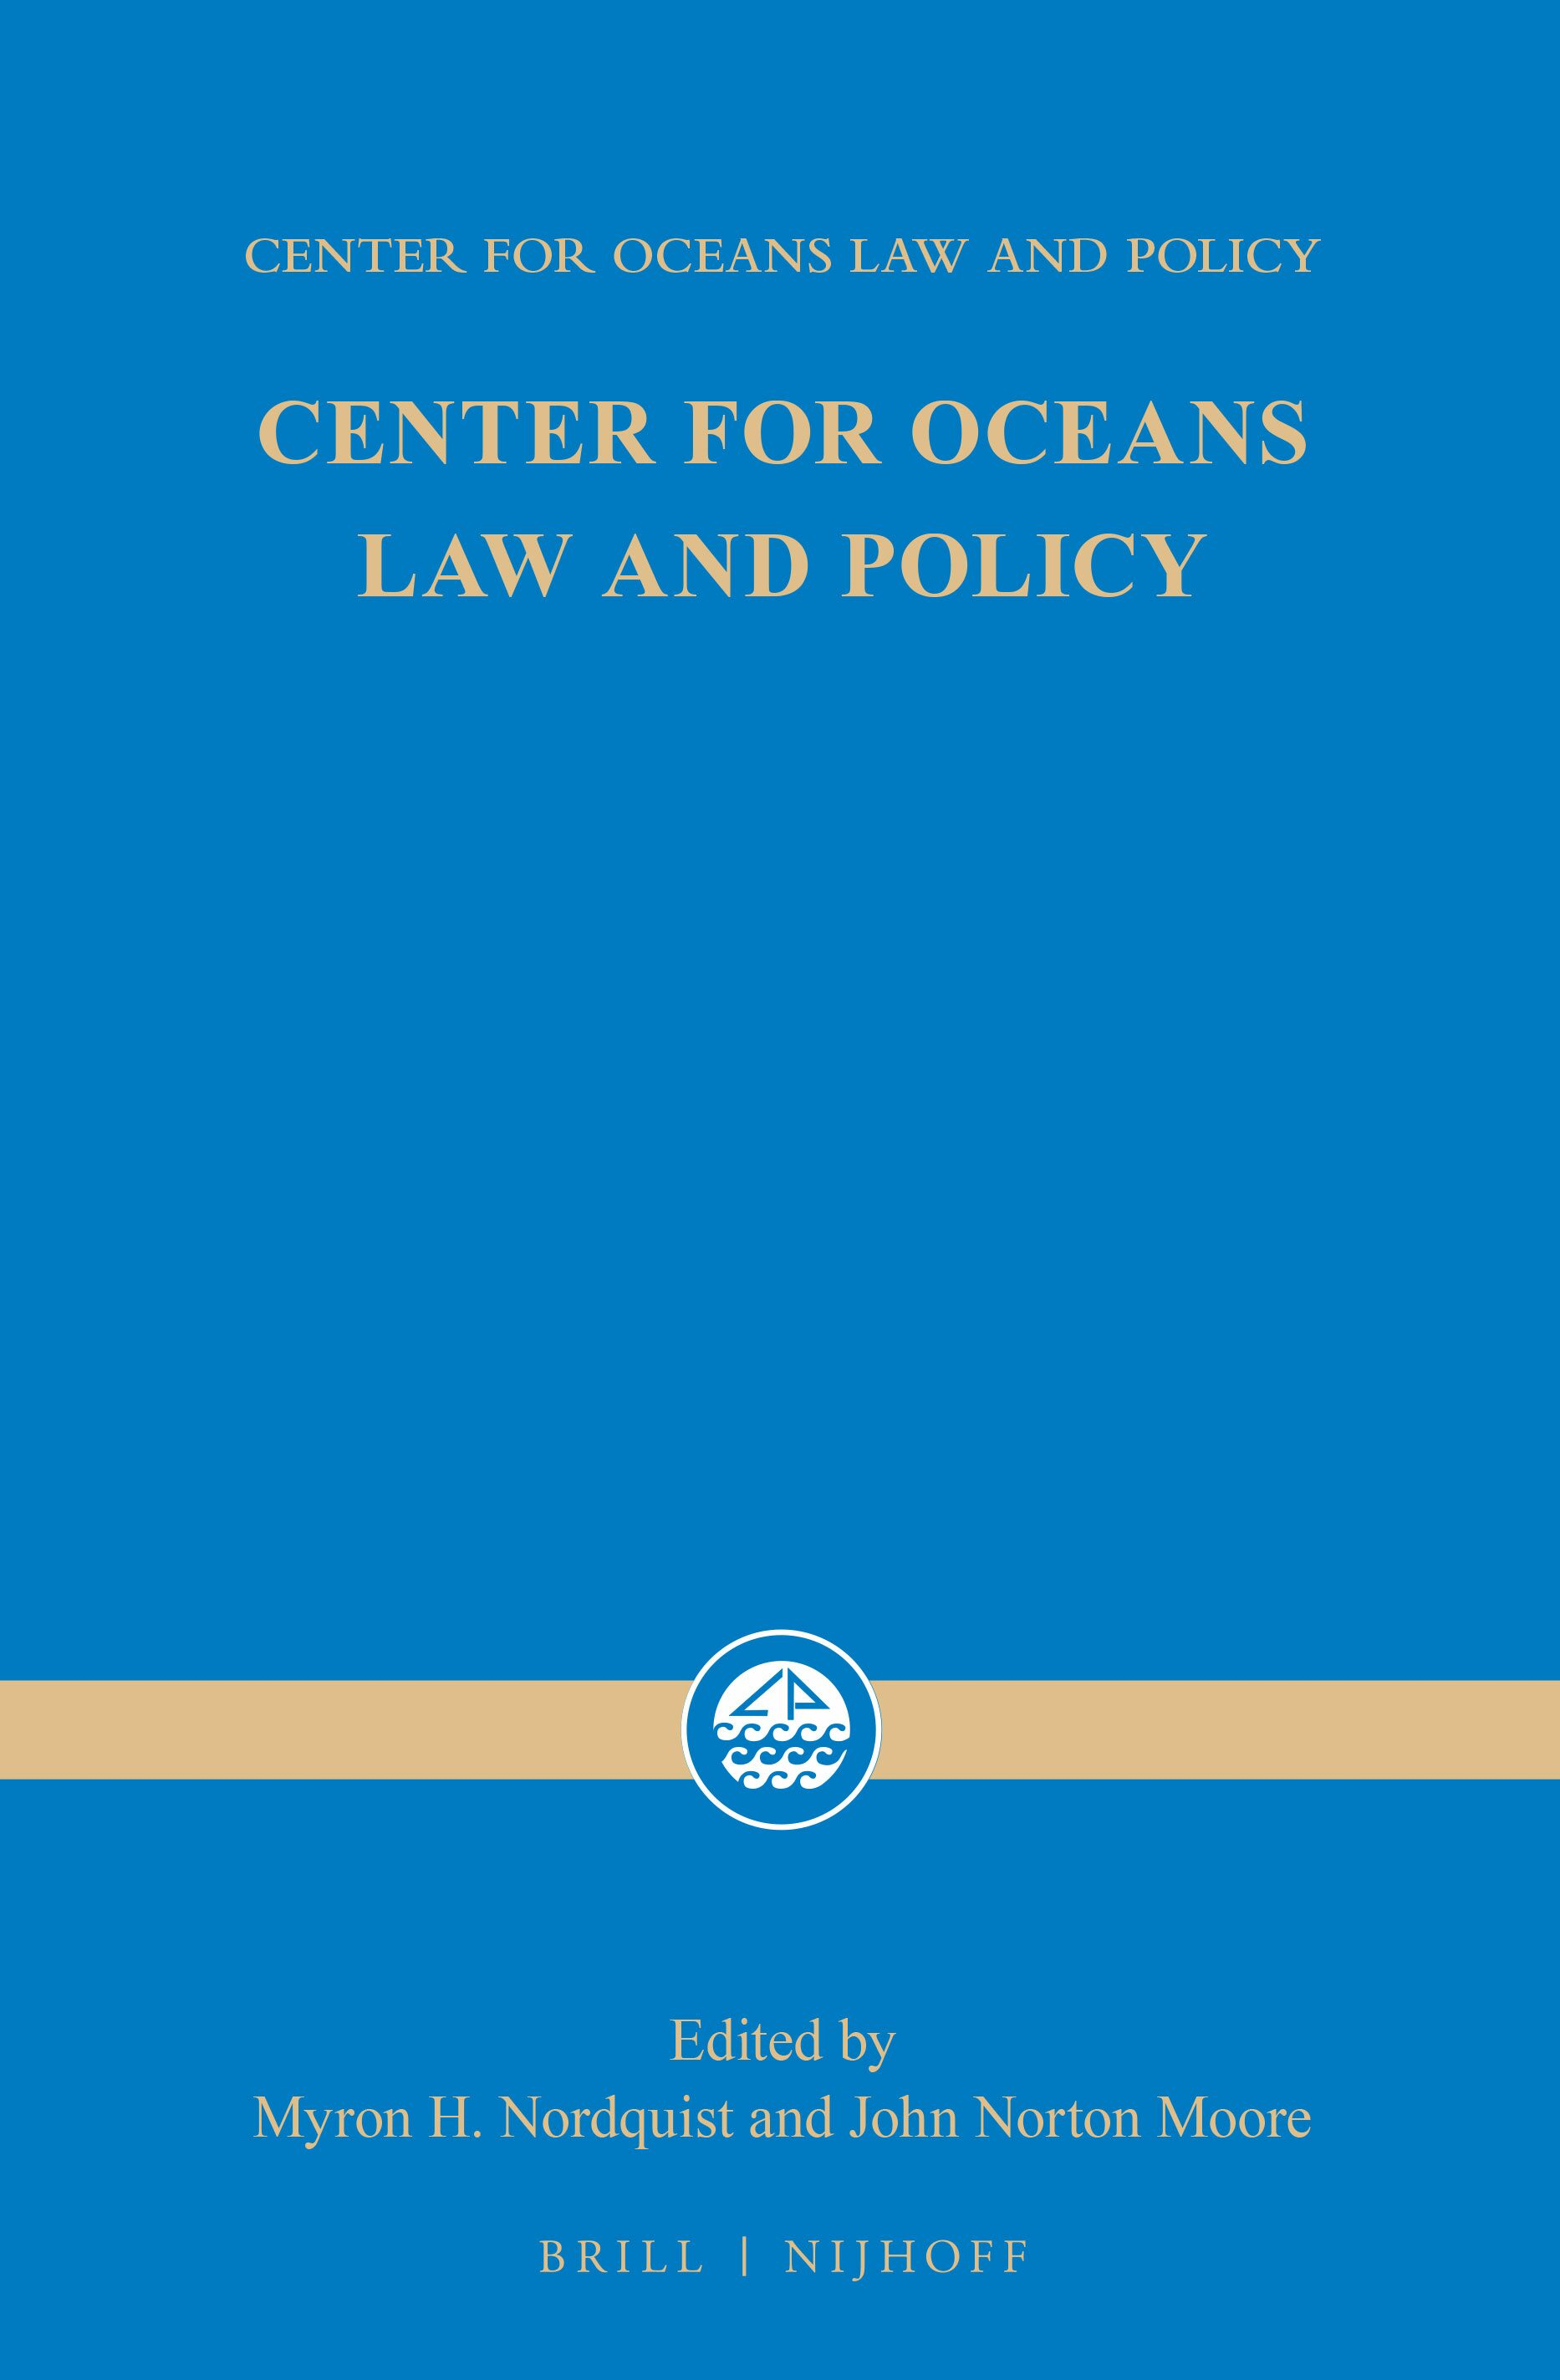 The Law of the Sea Convention : US Accession and Globalization